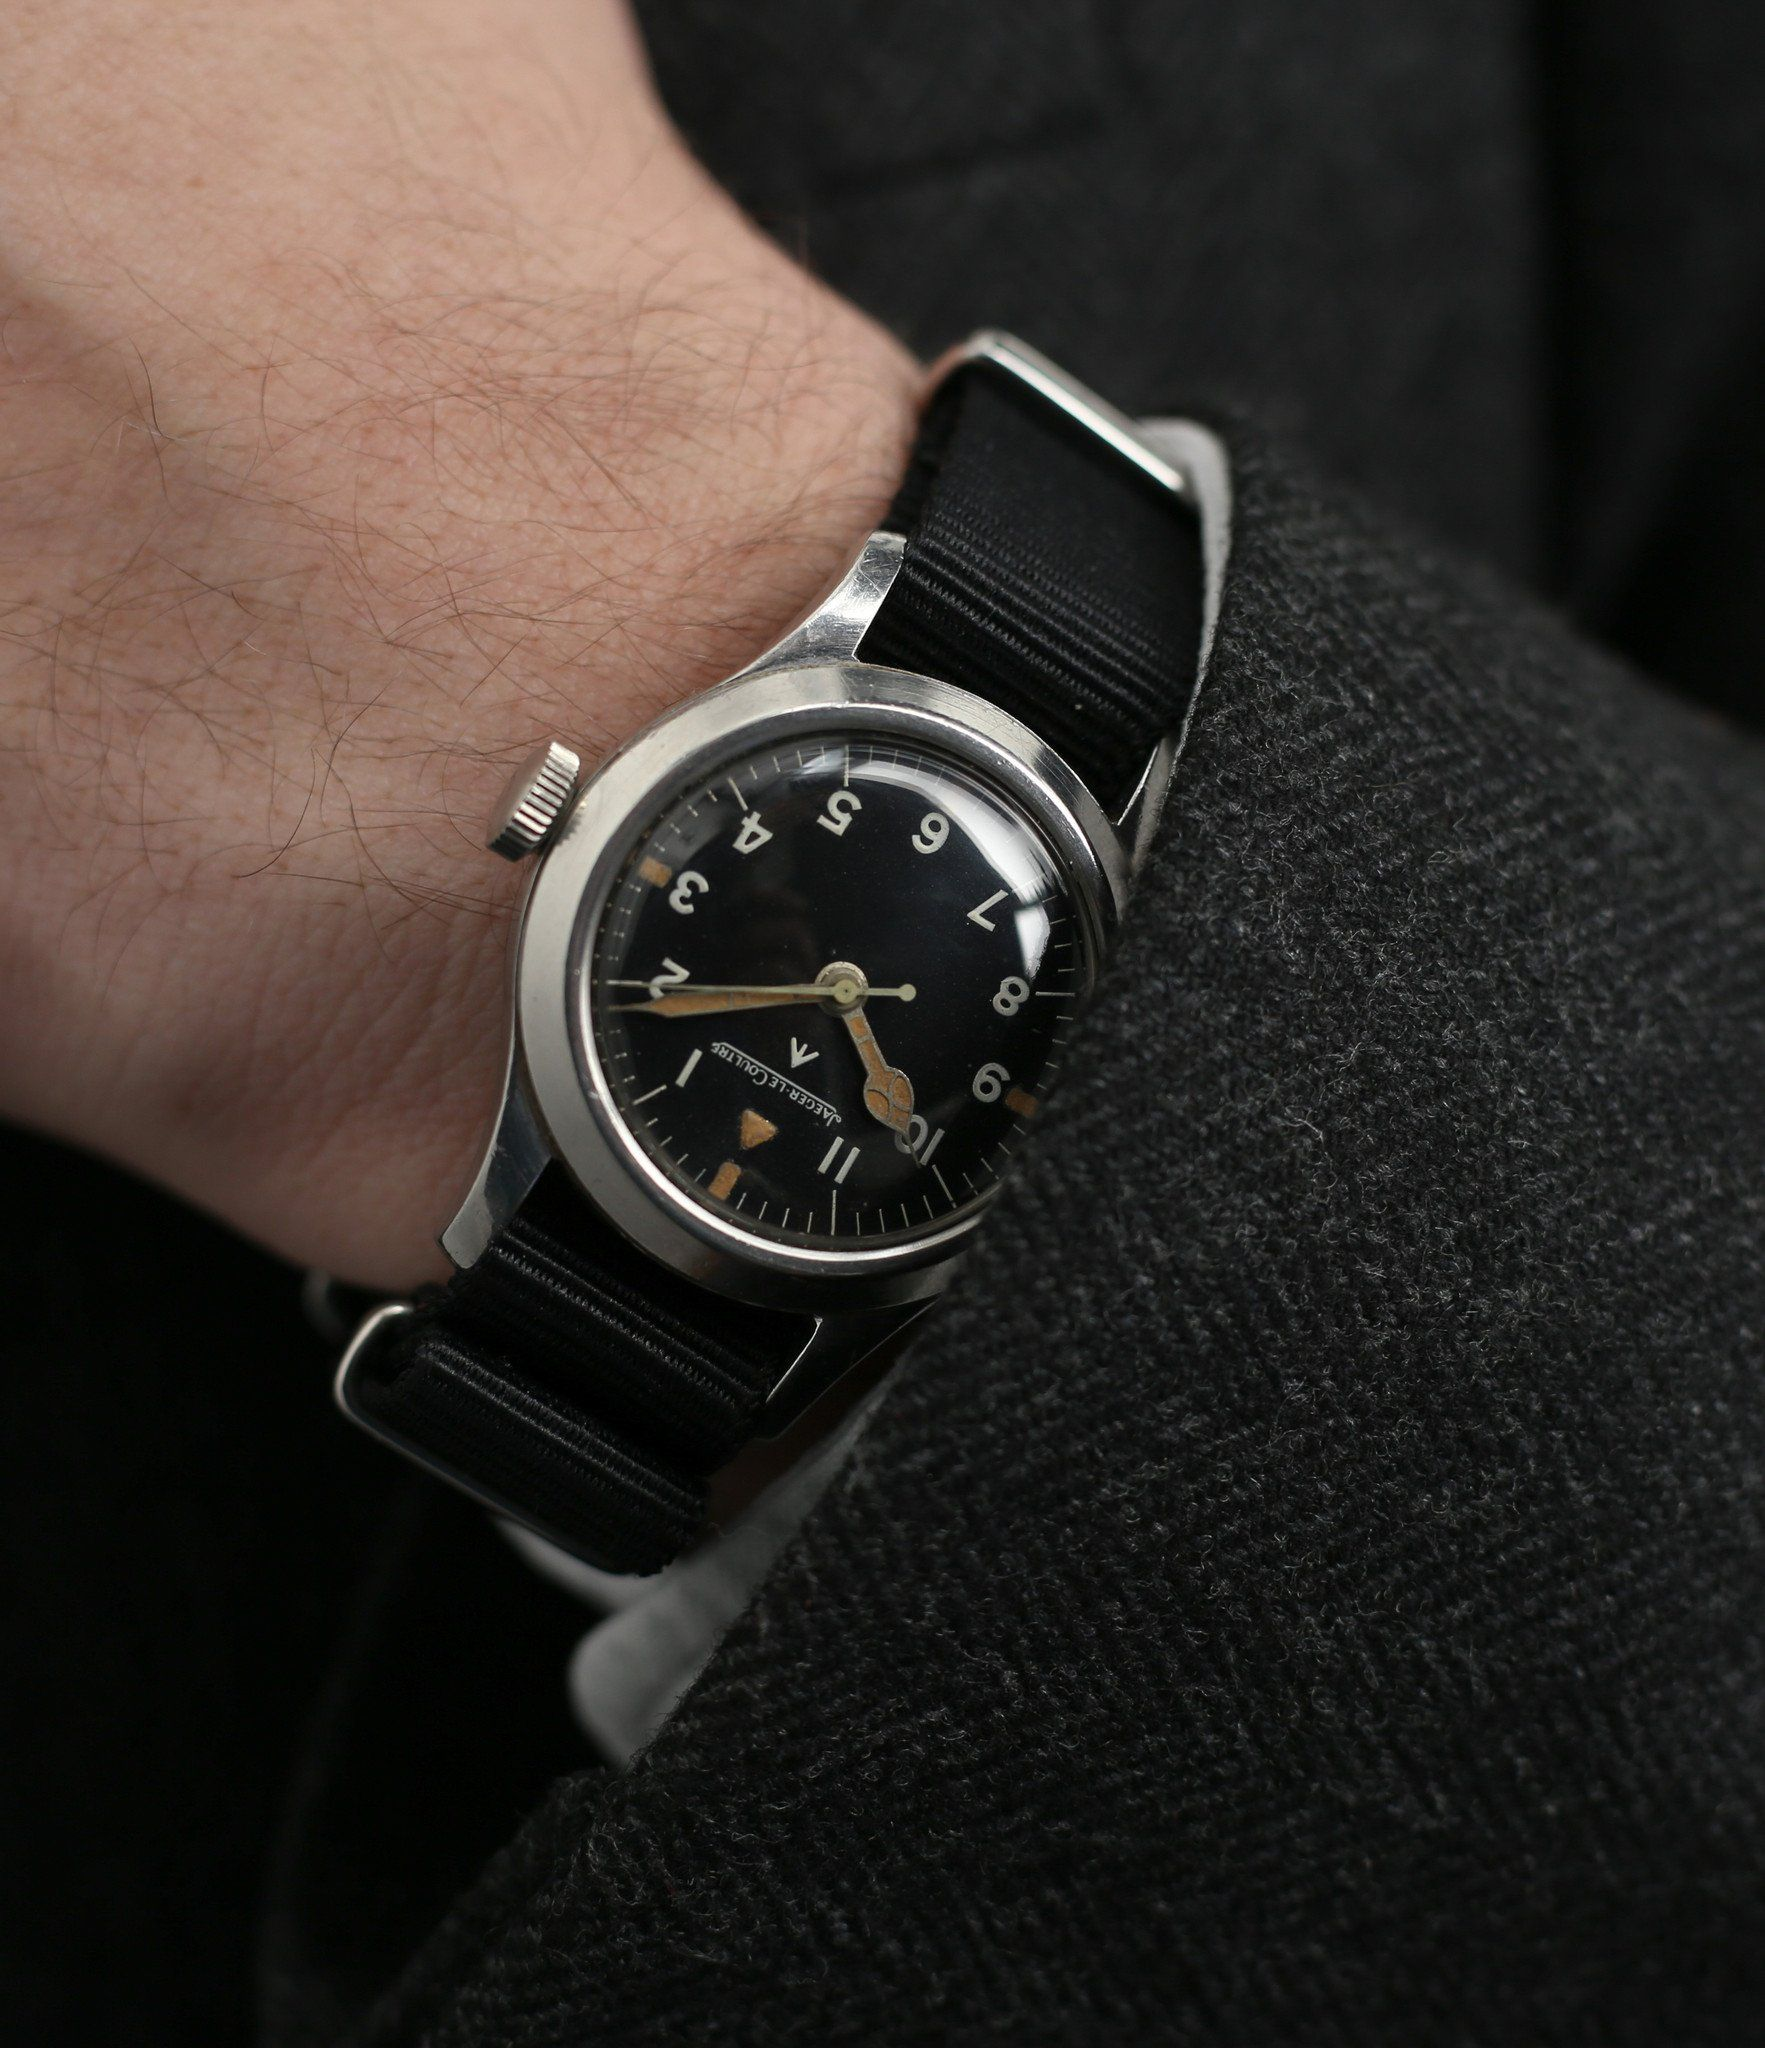 vintage Jaeger-LeCoultre Mark XI RAF military pilot watch 6B 346 with  cathedral hands 537fd52a23f